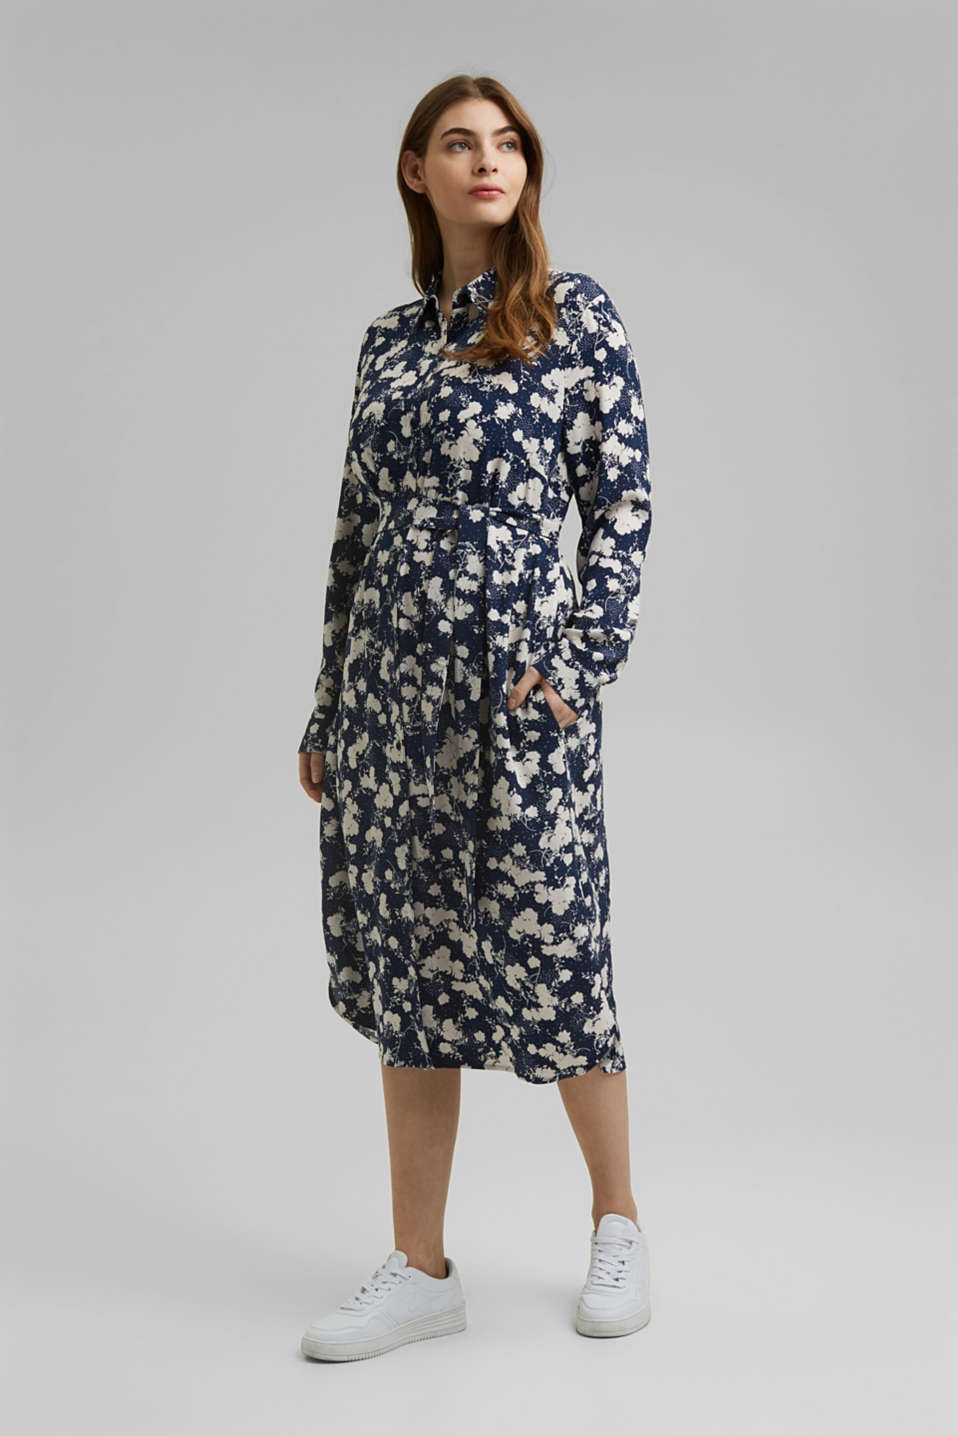 Esprit - CURVY shirt dress with a floral print